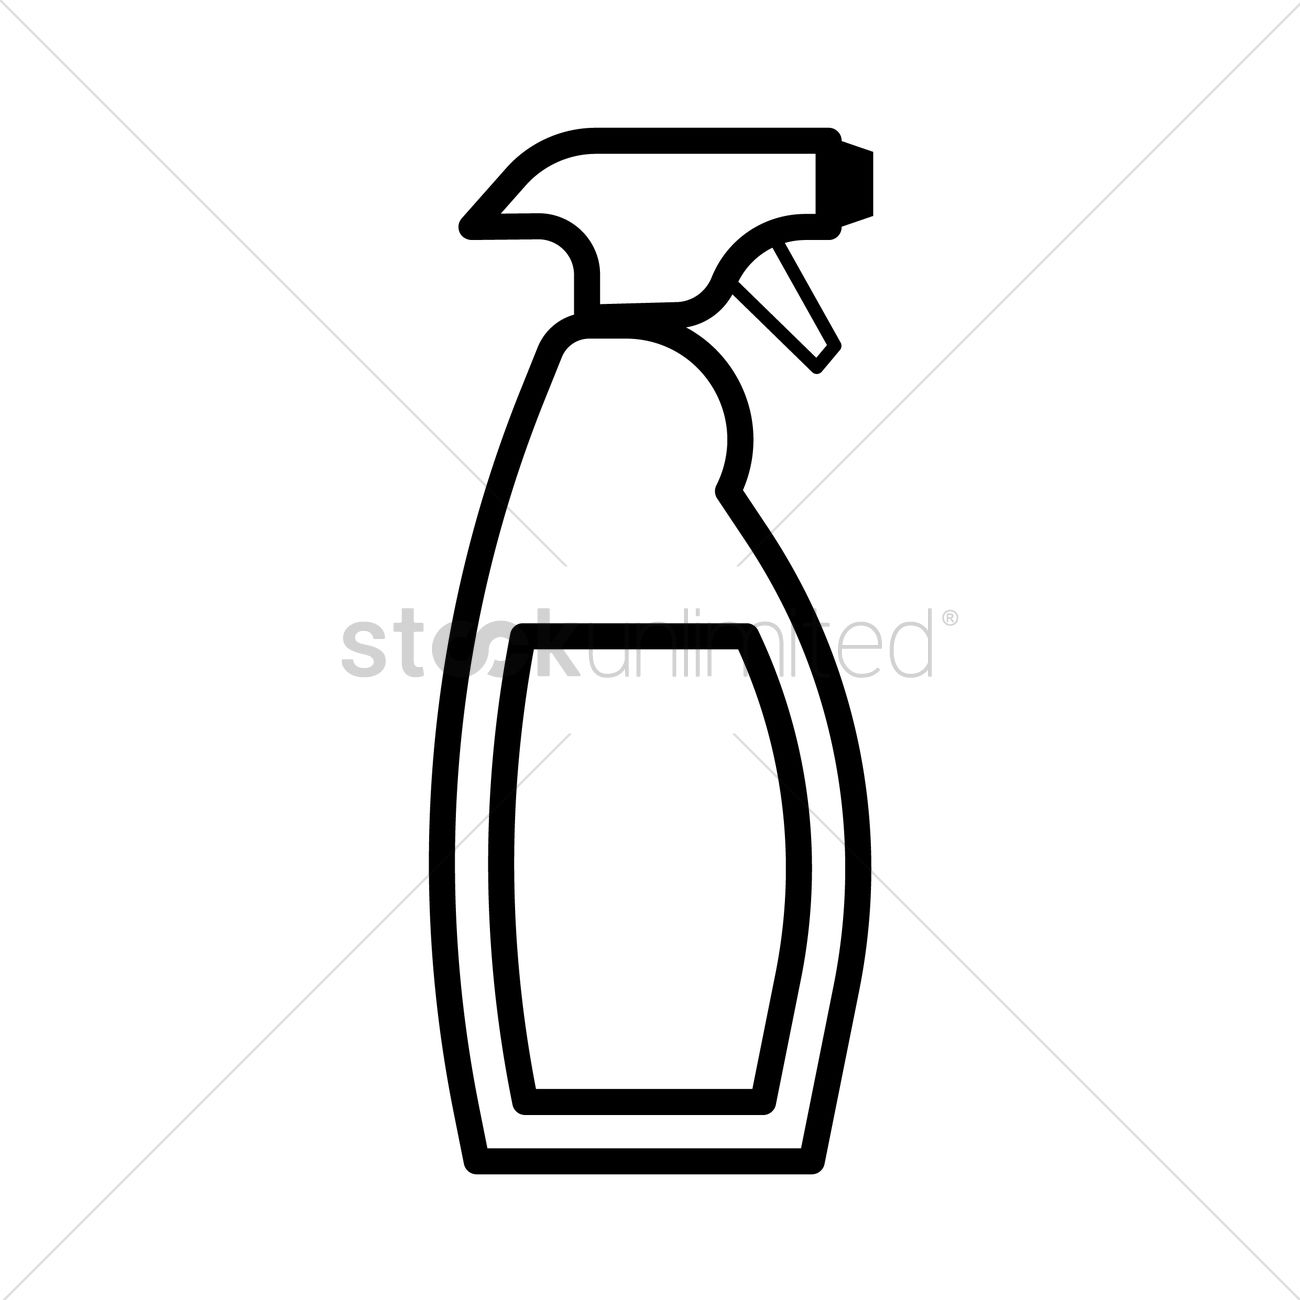 Cleaning bottles clip art - photo#48